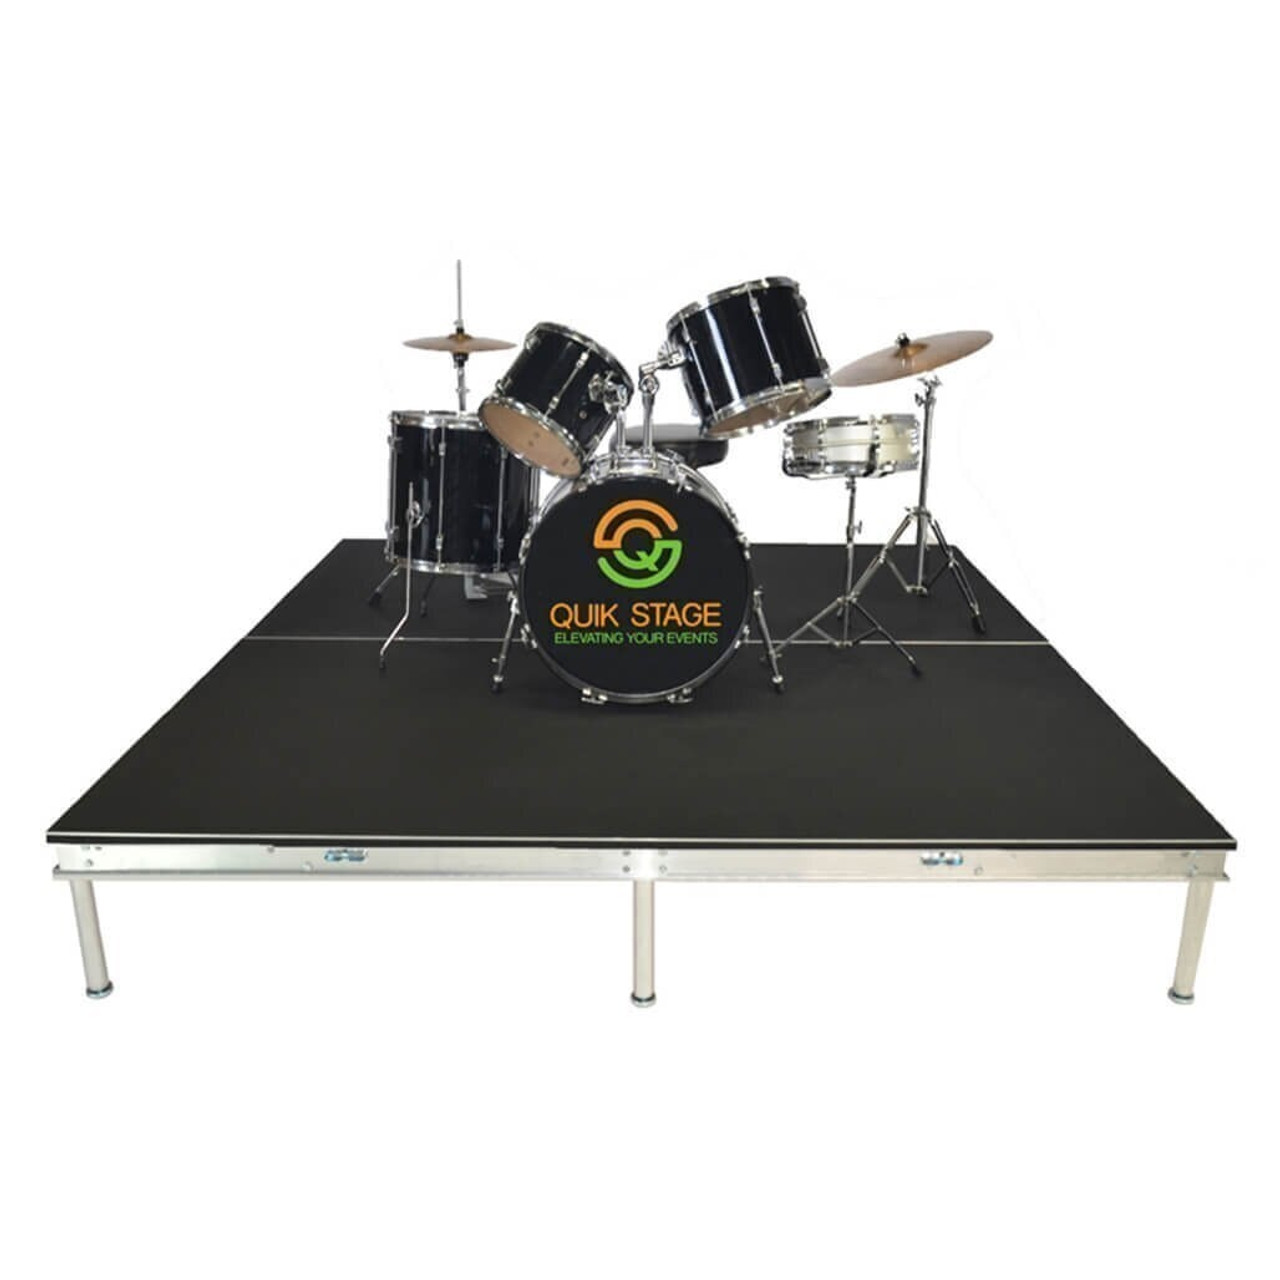 Quik Stage 4' x 36' High Portable Stage Package with Black Polyvinyl Non-Skid Surface. Additional Heights and Surfaces Available - Drum Riser without skirting